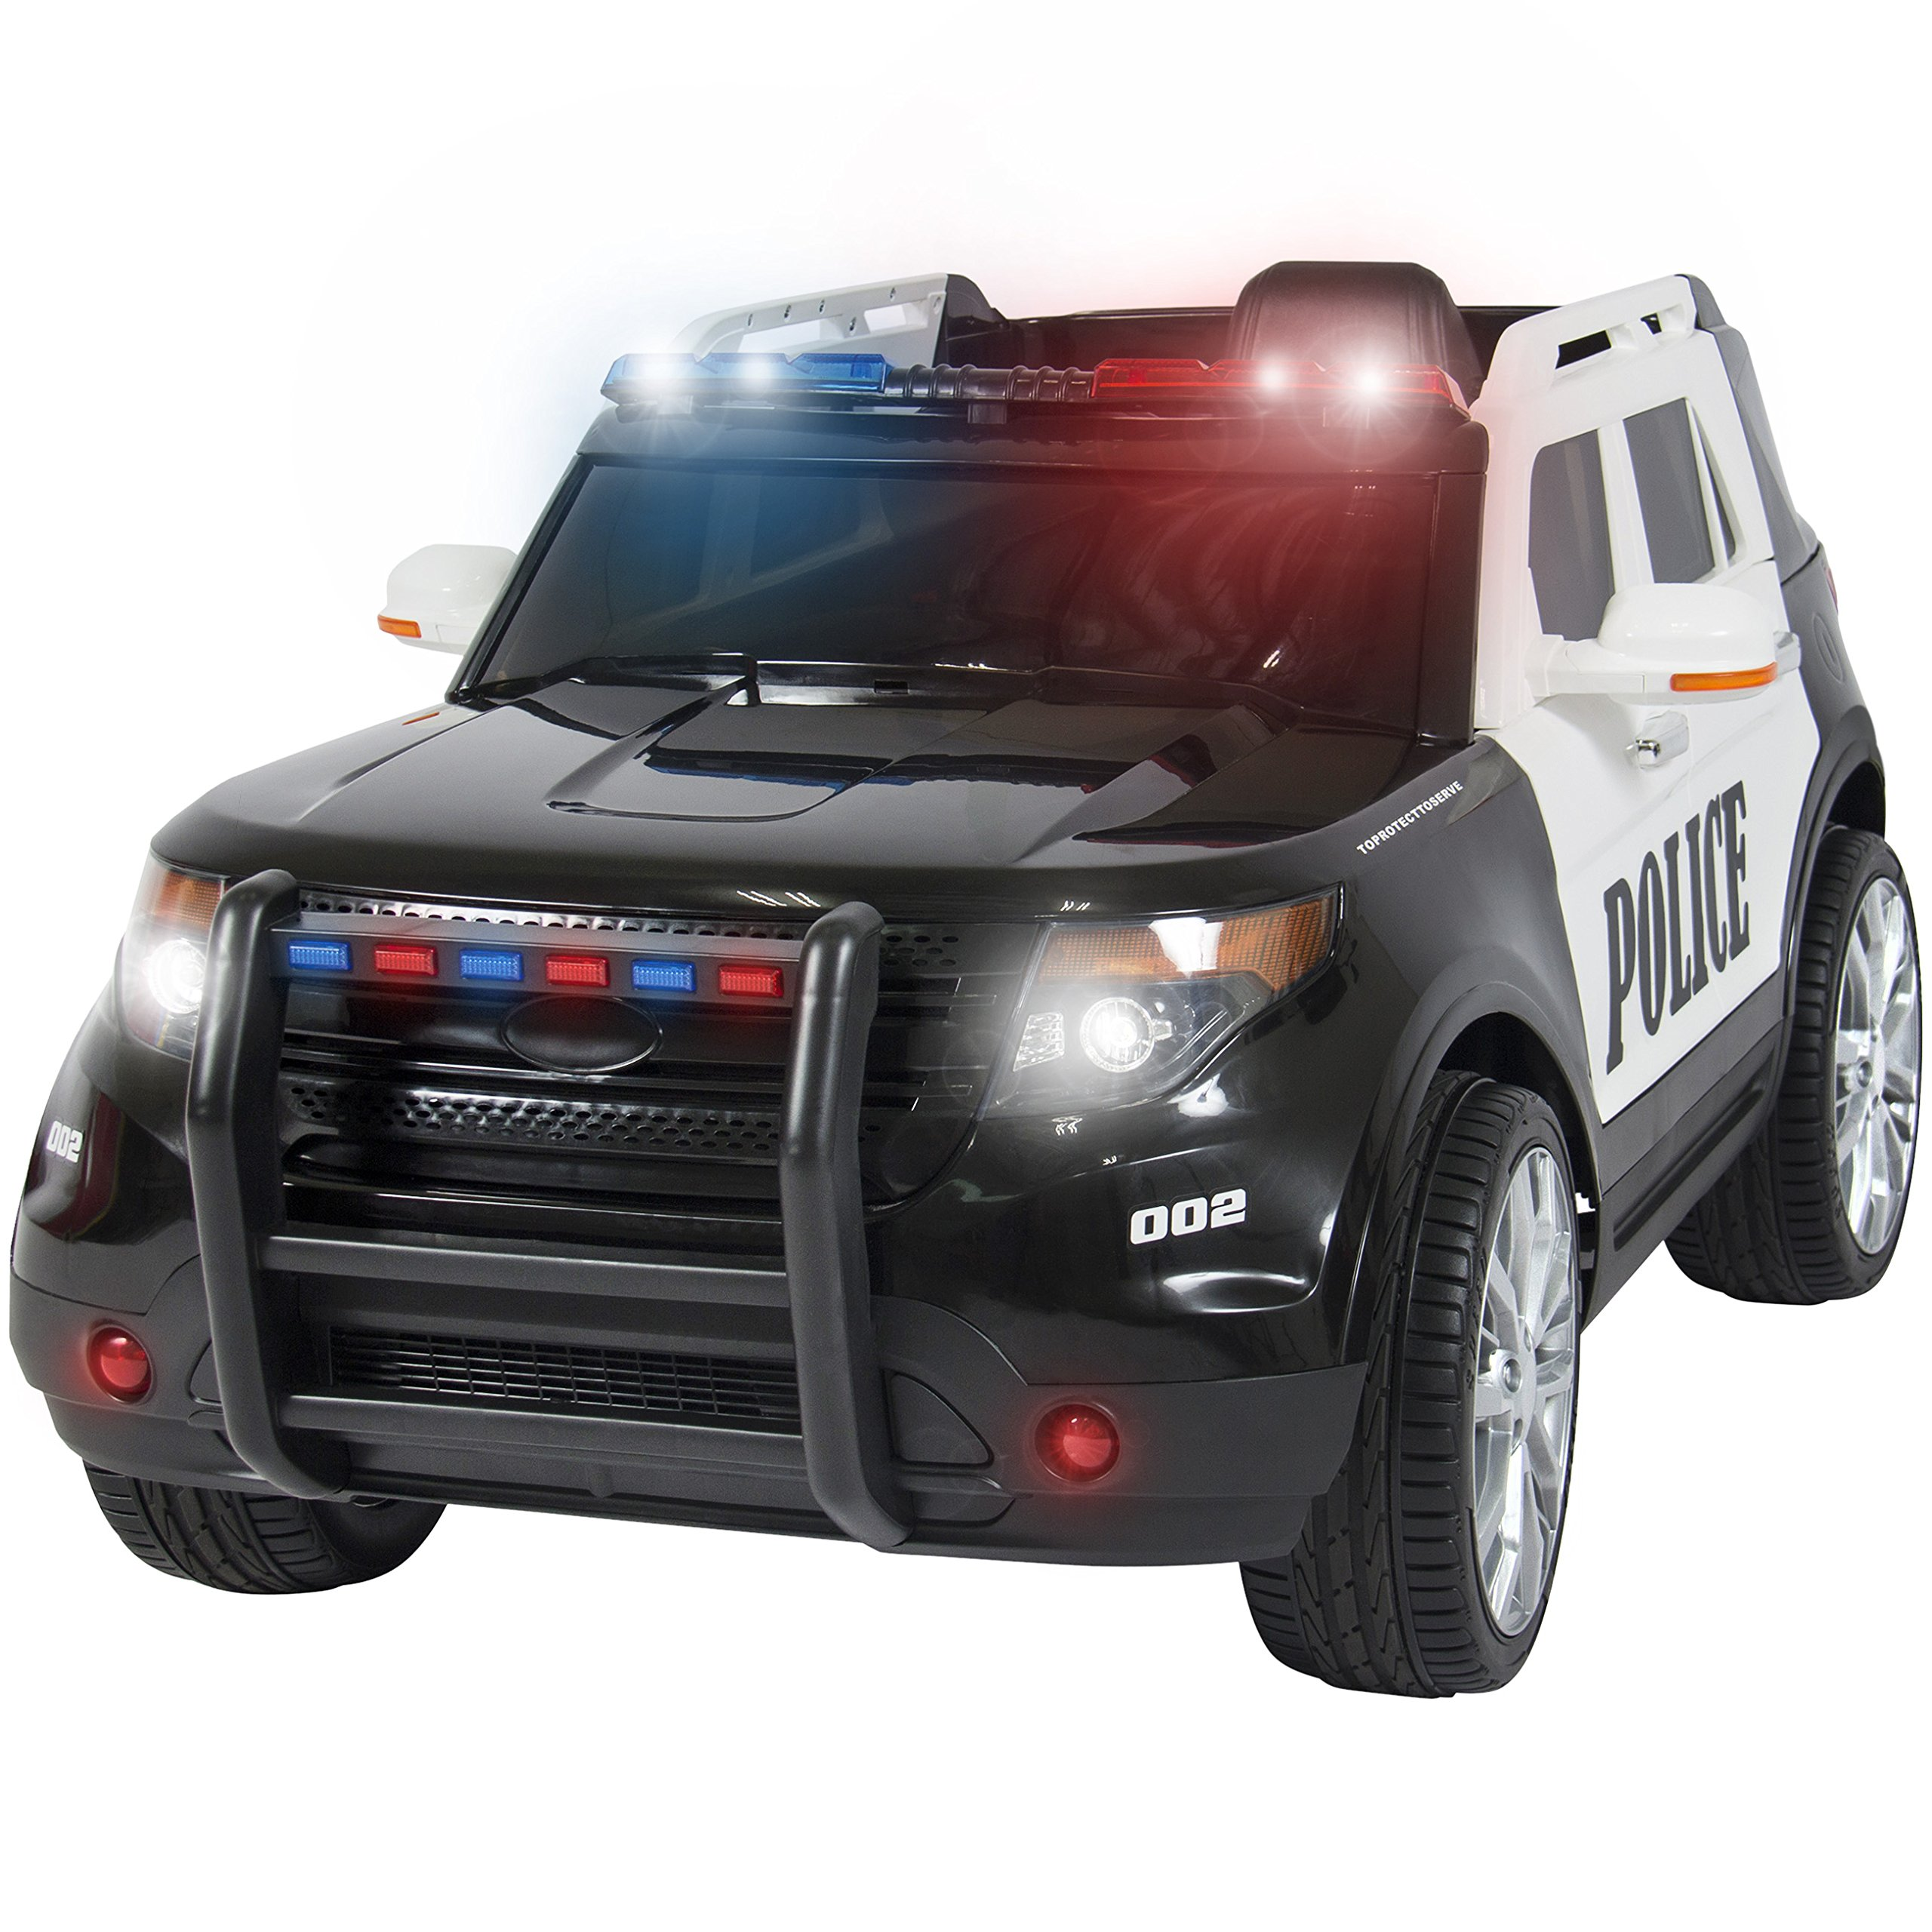 Best Choice Products Ford Style 12V Ride On Car Police Car W/ Remote Control, 2 Speeds, LED Lights by Best Choice Products